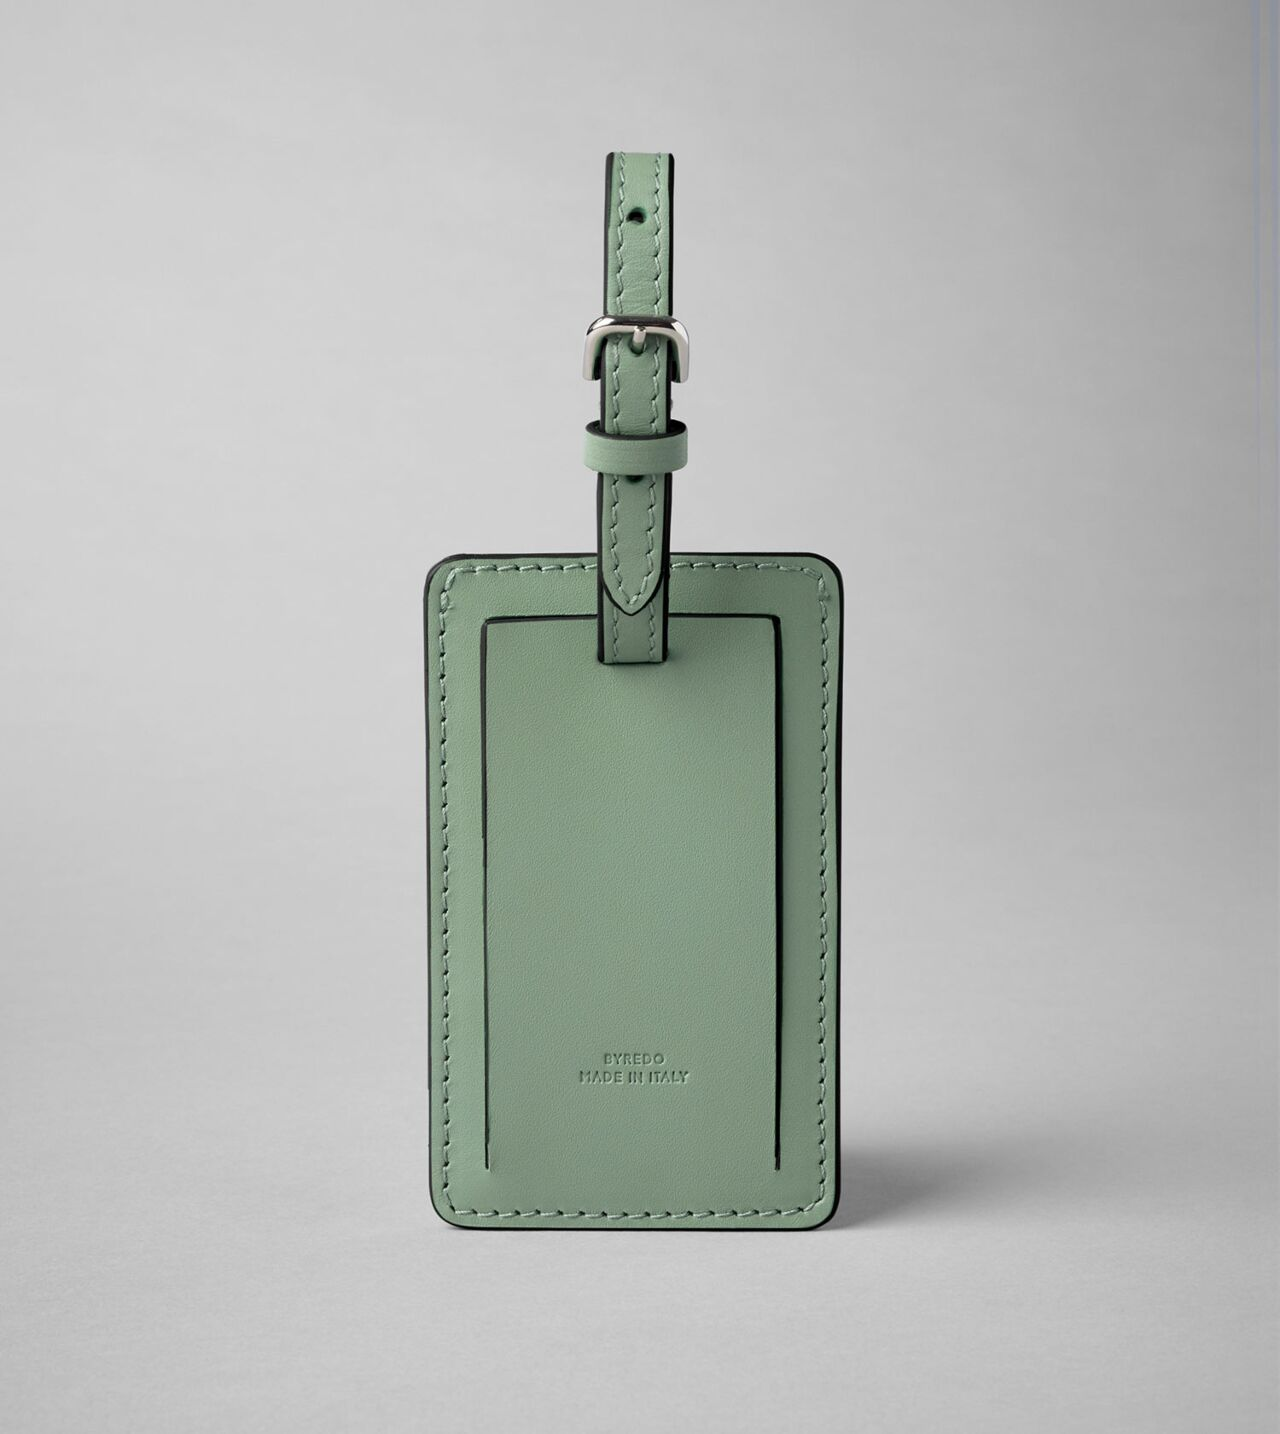 Picture of Byredo Luggage tag in Light green